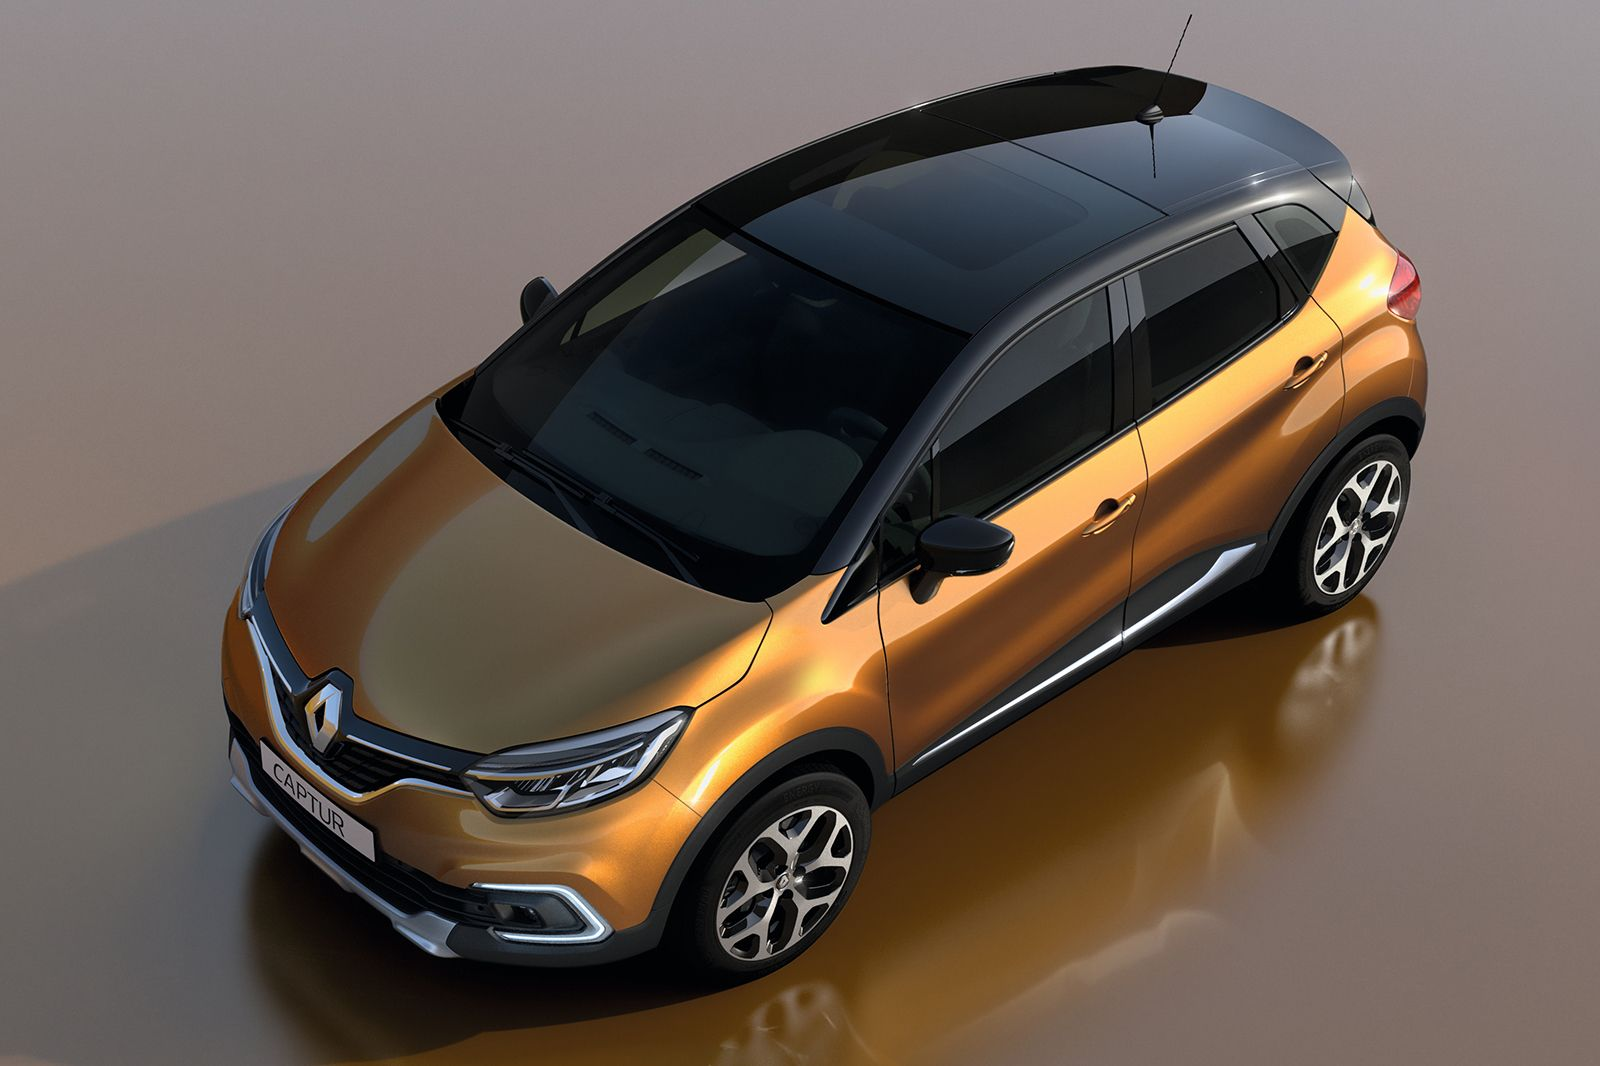 Facelifted Renault Captur Revealed Ahead Of Geneva Debut